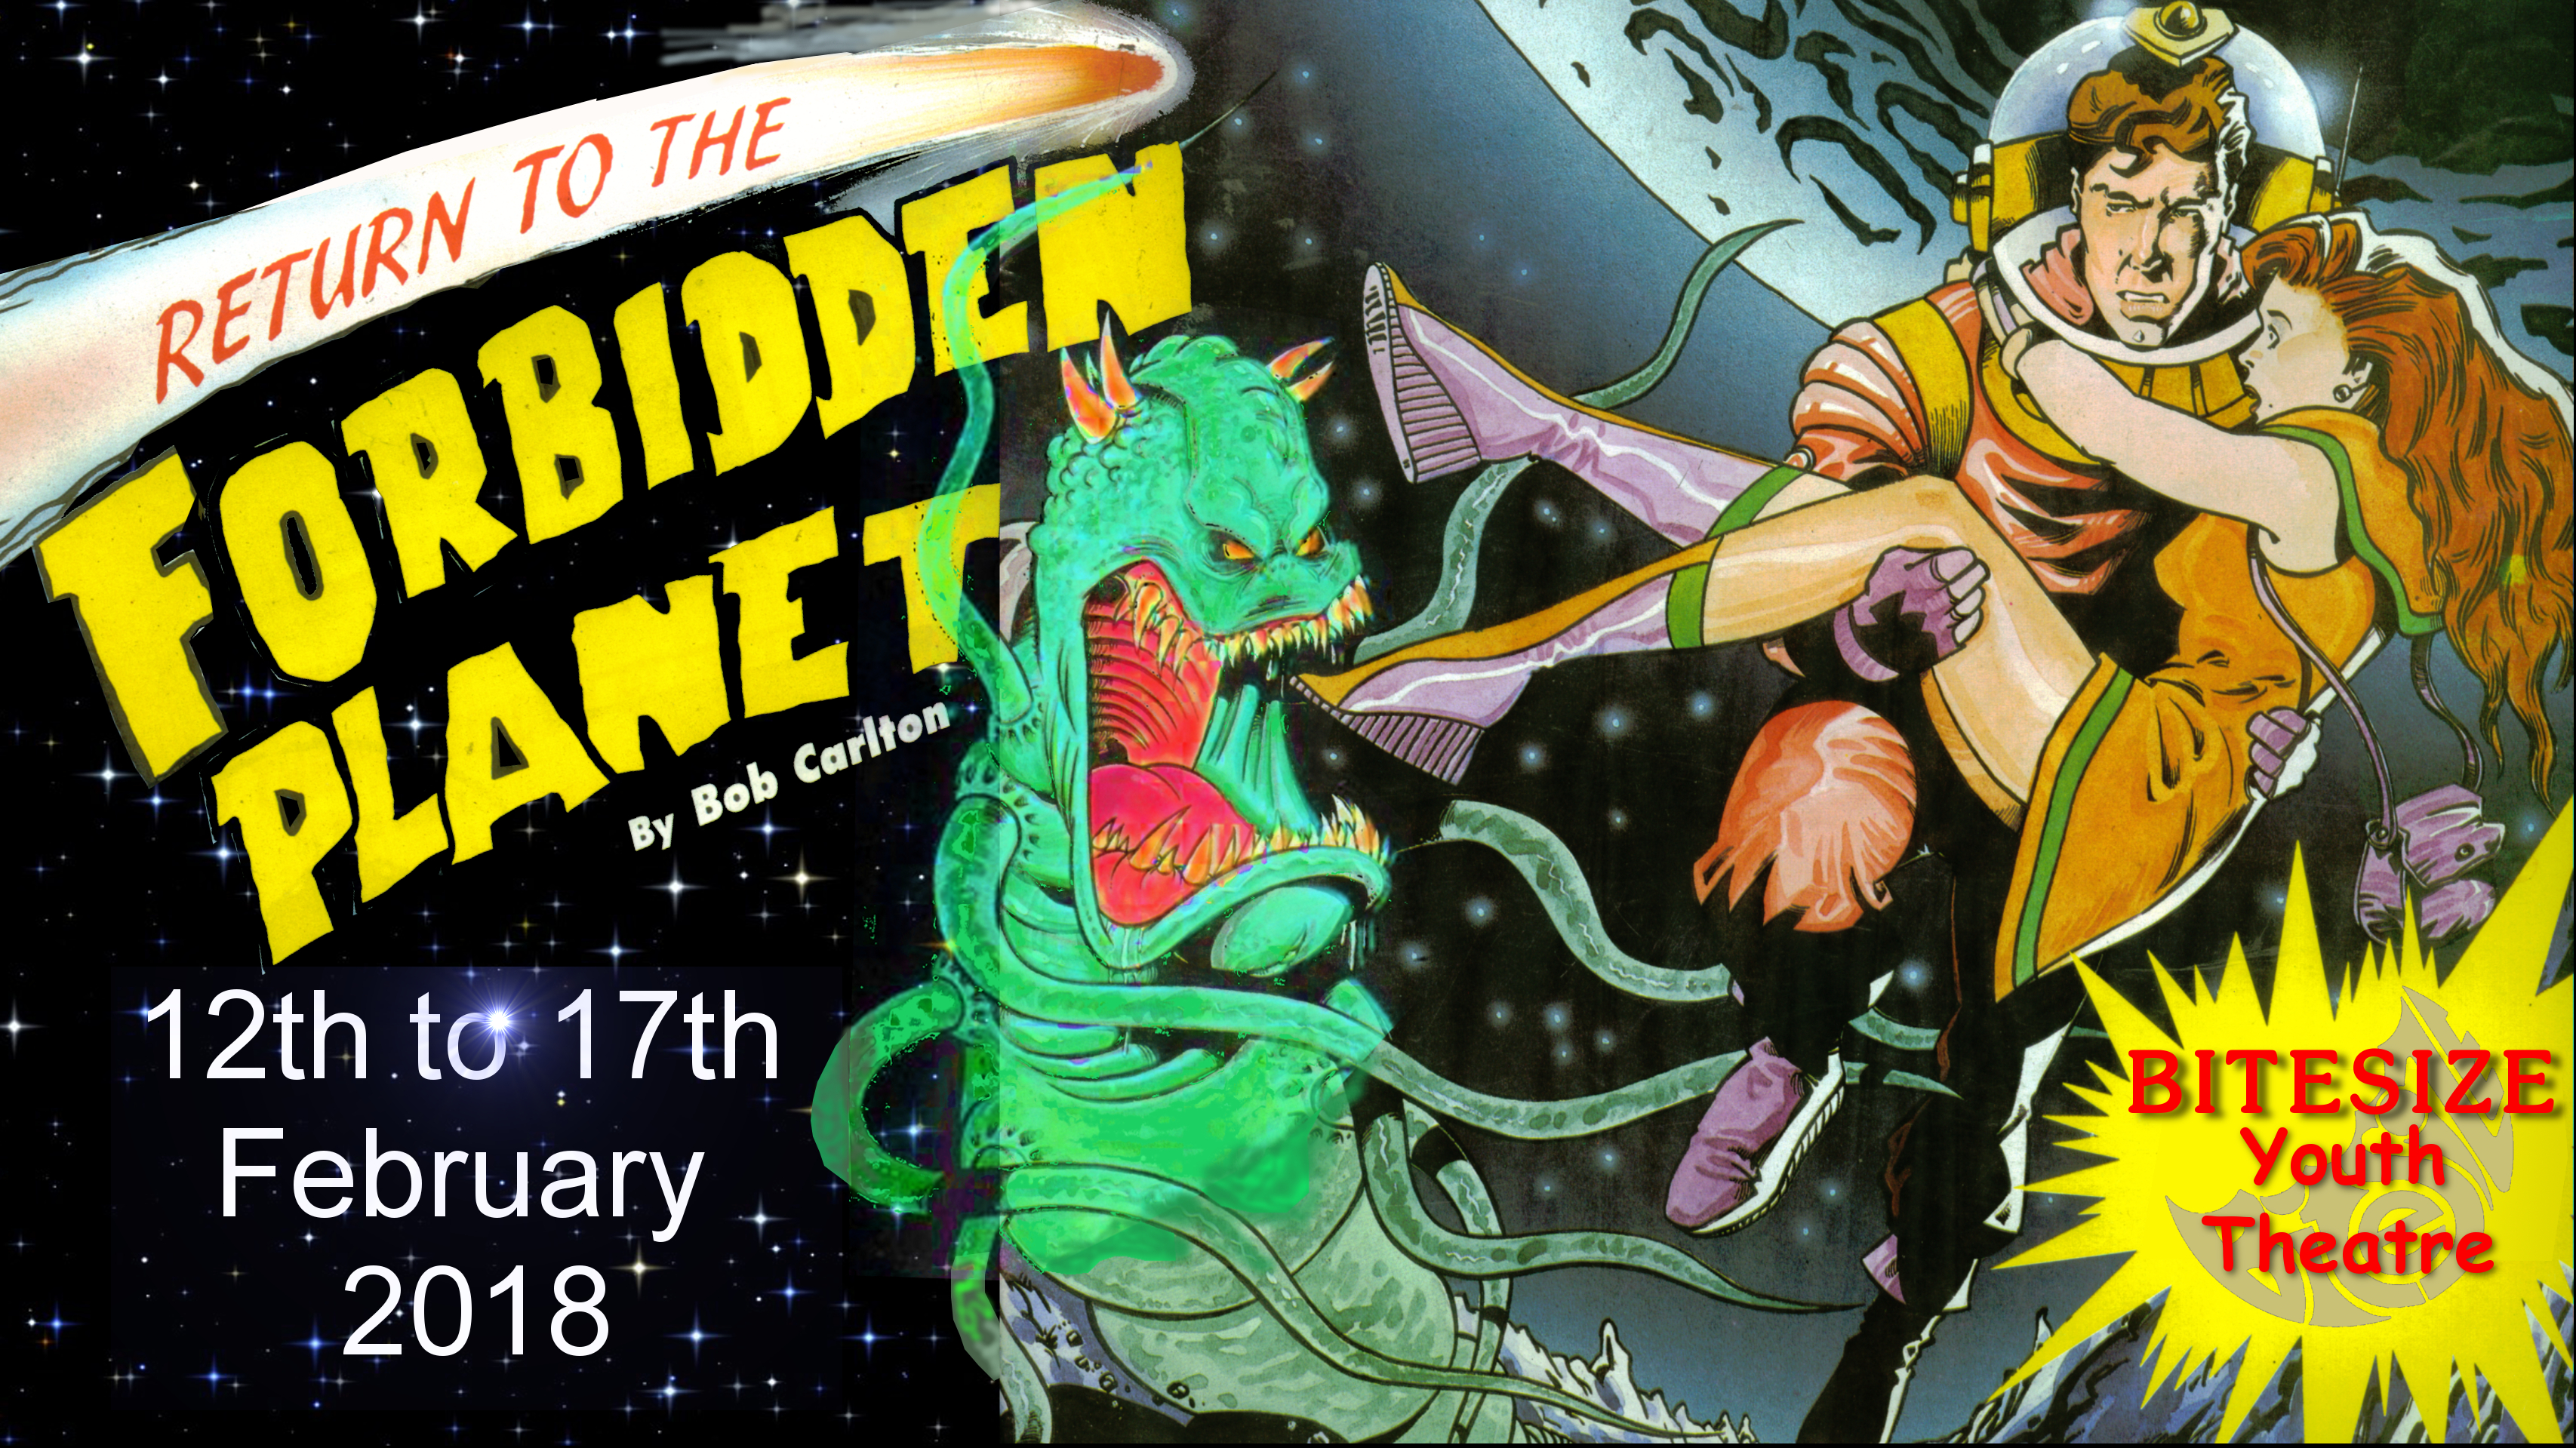 Return to the Forbidden Planet - Feb 12-17